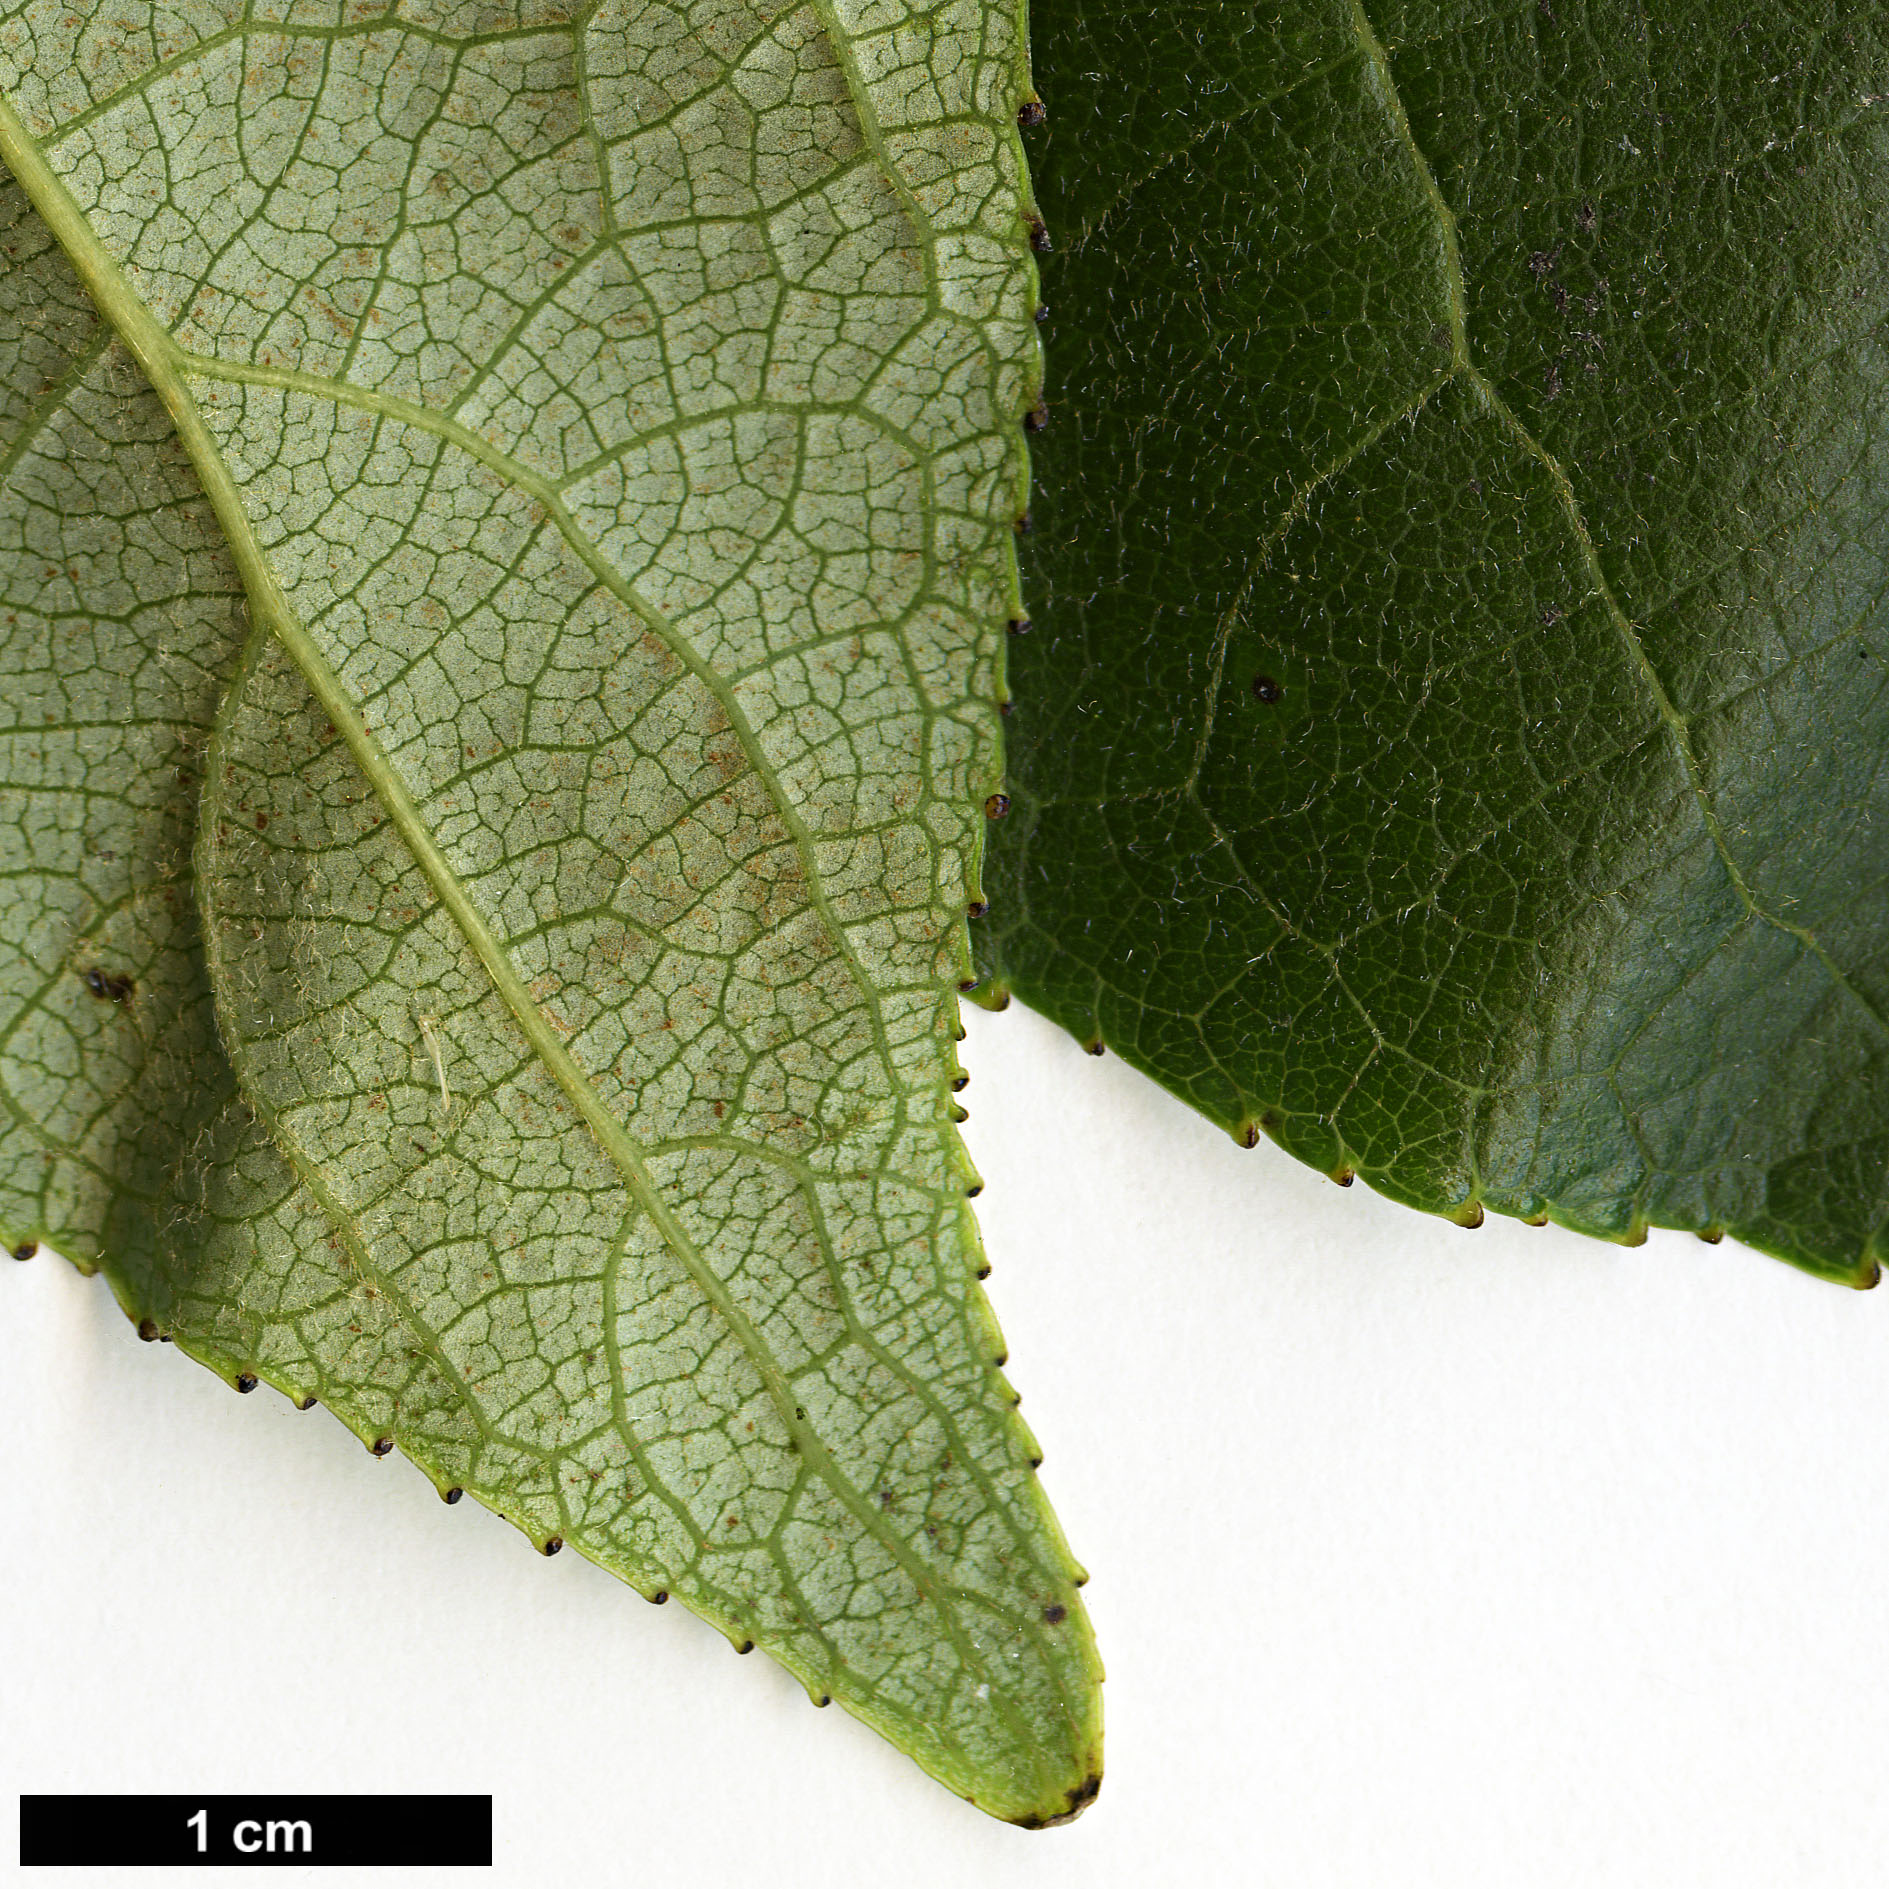 High resolution image: Family: Salicaceae - Genus: Populus - Taxon: szechuanica var. tibetica